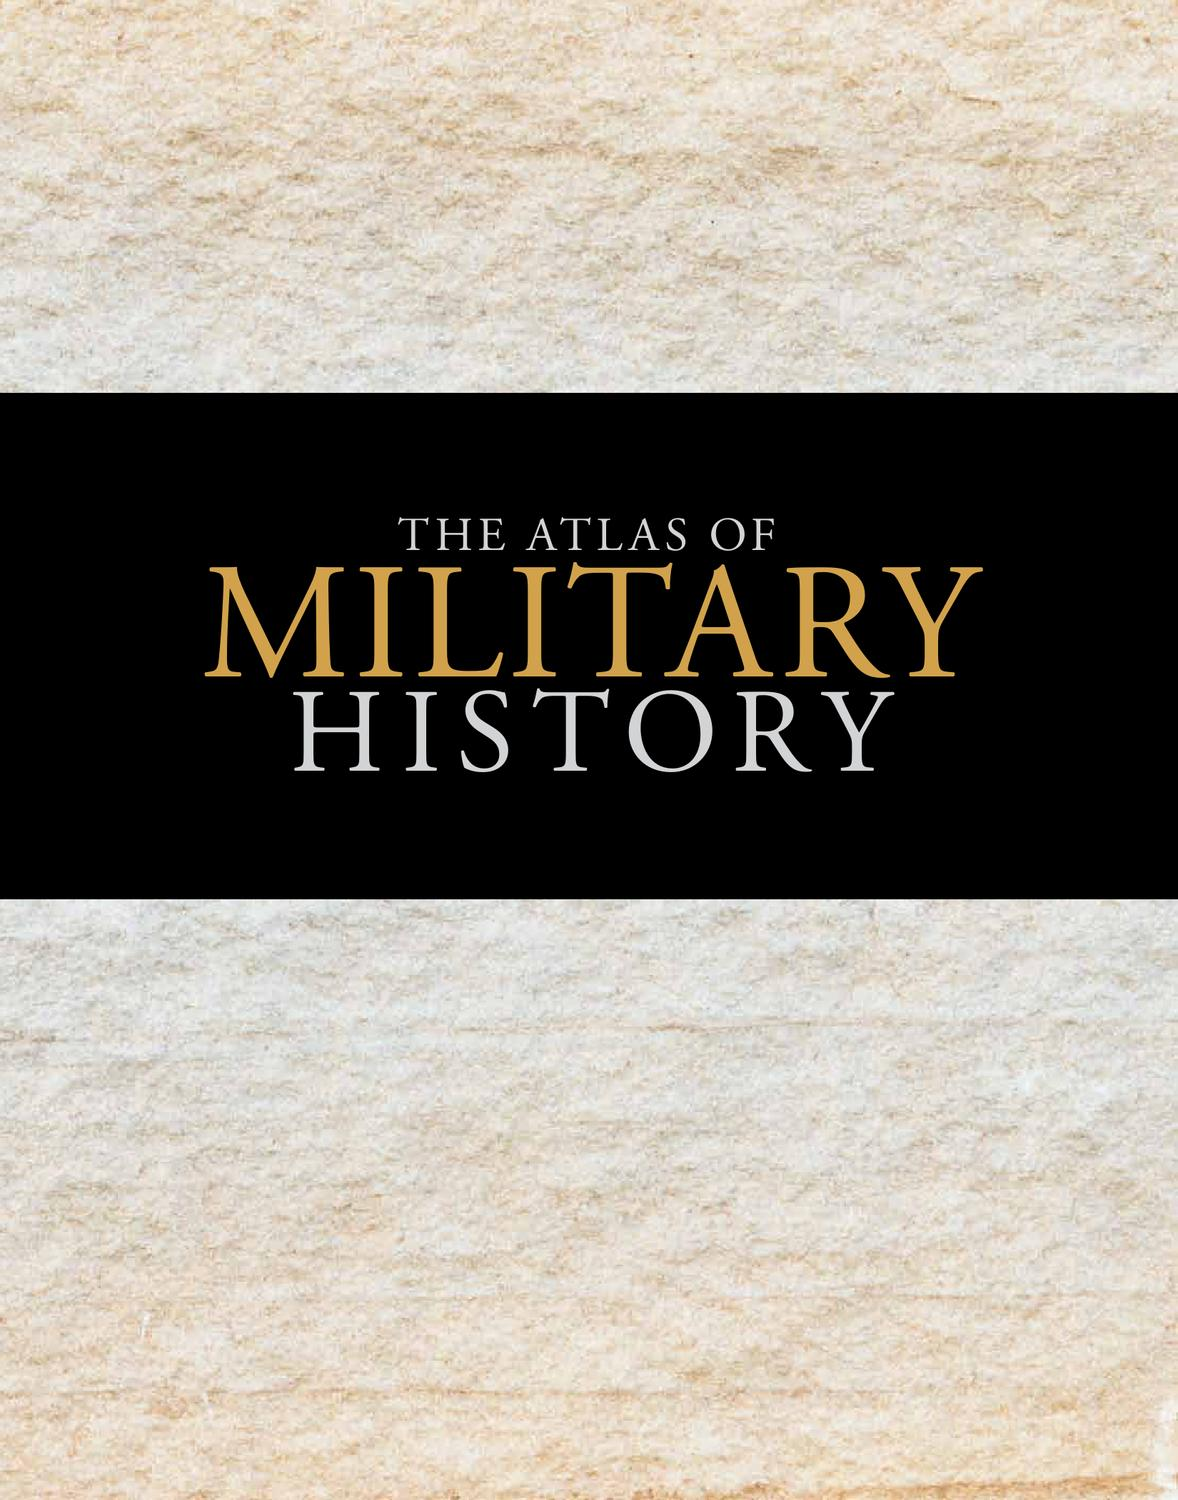 Atlas of Military History by Amanda Lomazoff